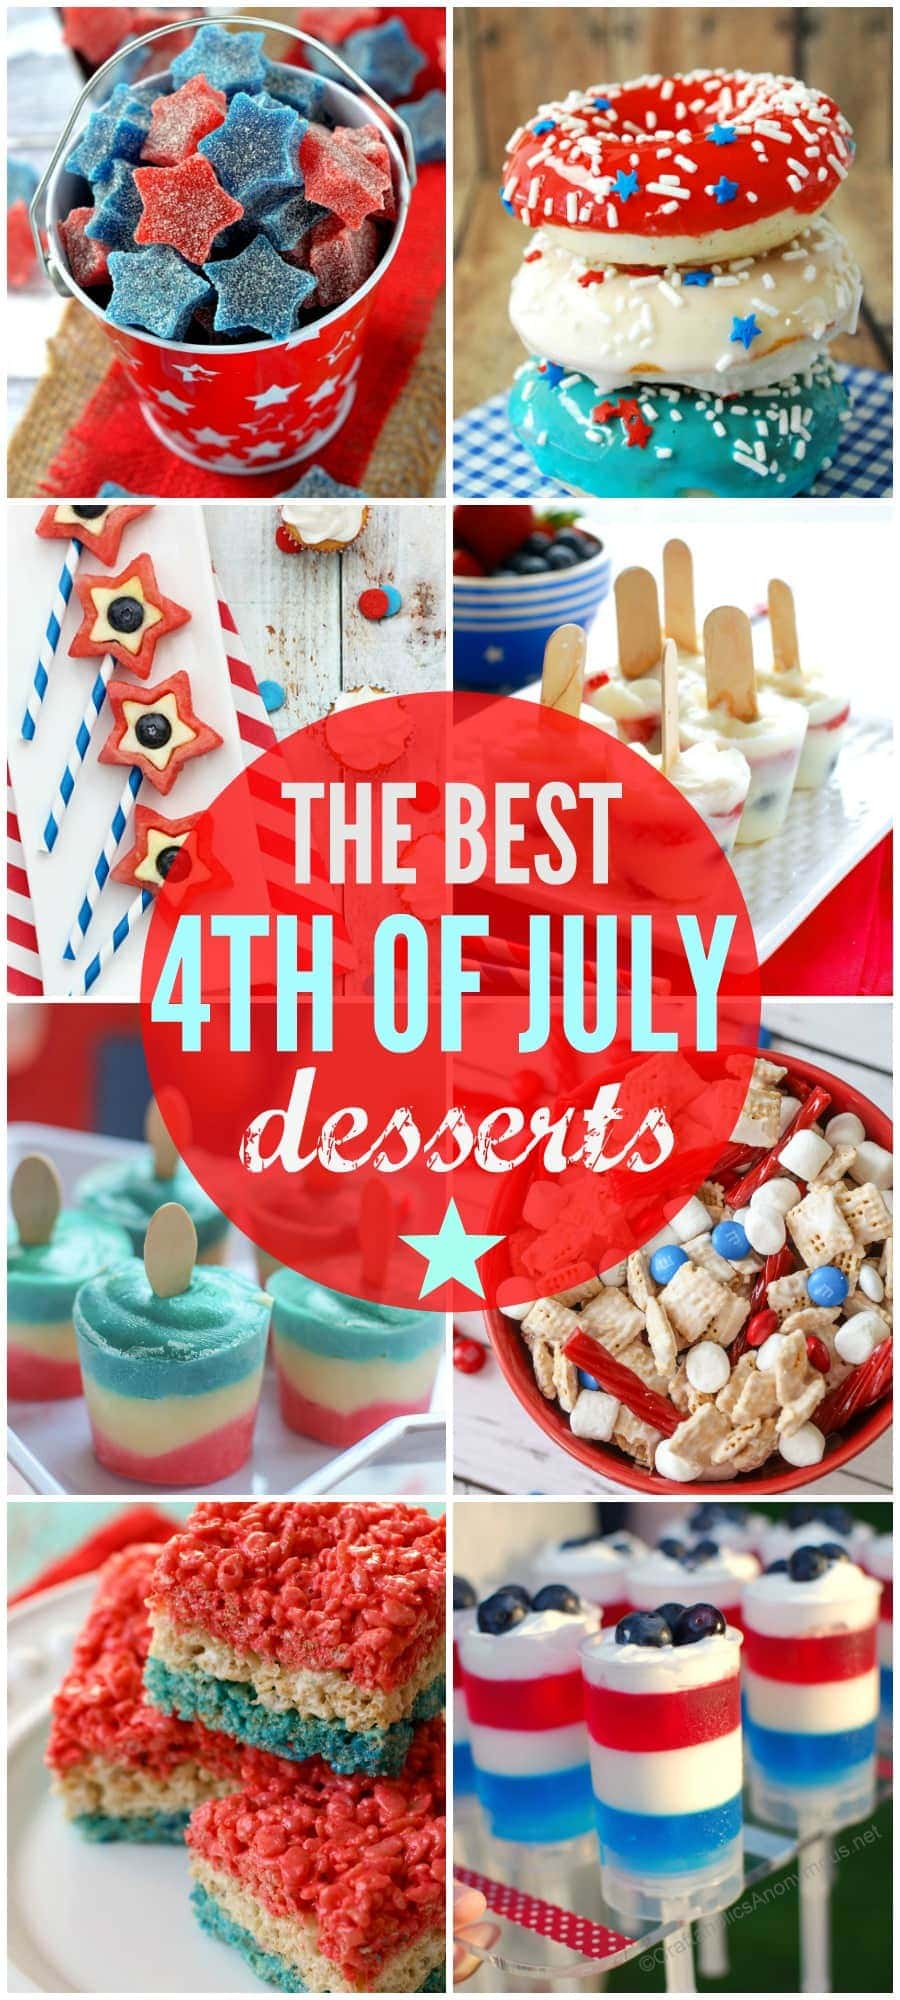 The BEST collection of 4th of July desserts. From cakes to trifles and fudge, these red, white and blue creations are perfect for all your patriotic celebrations!